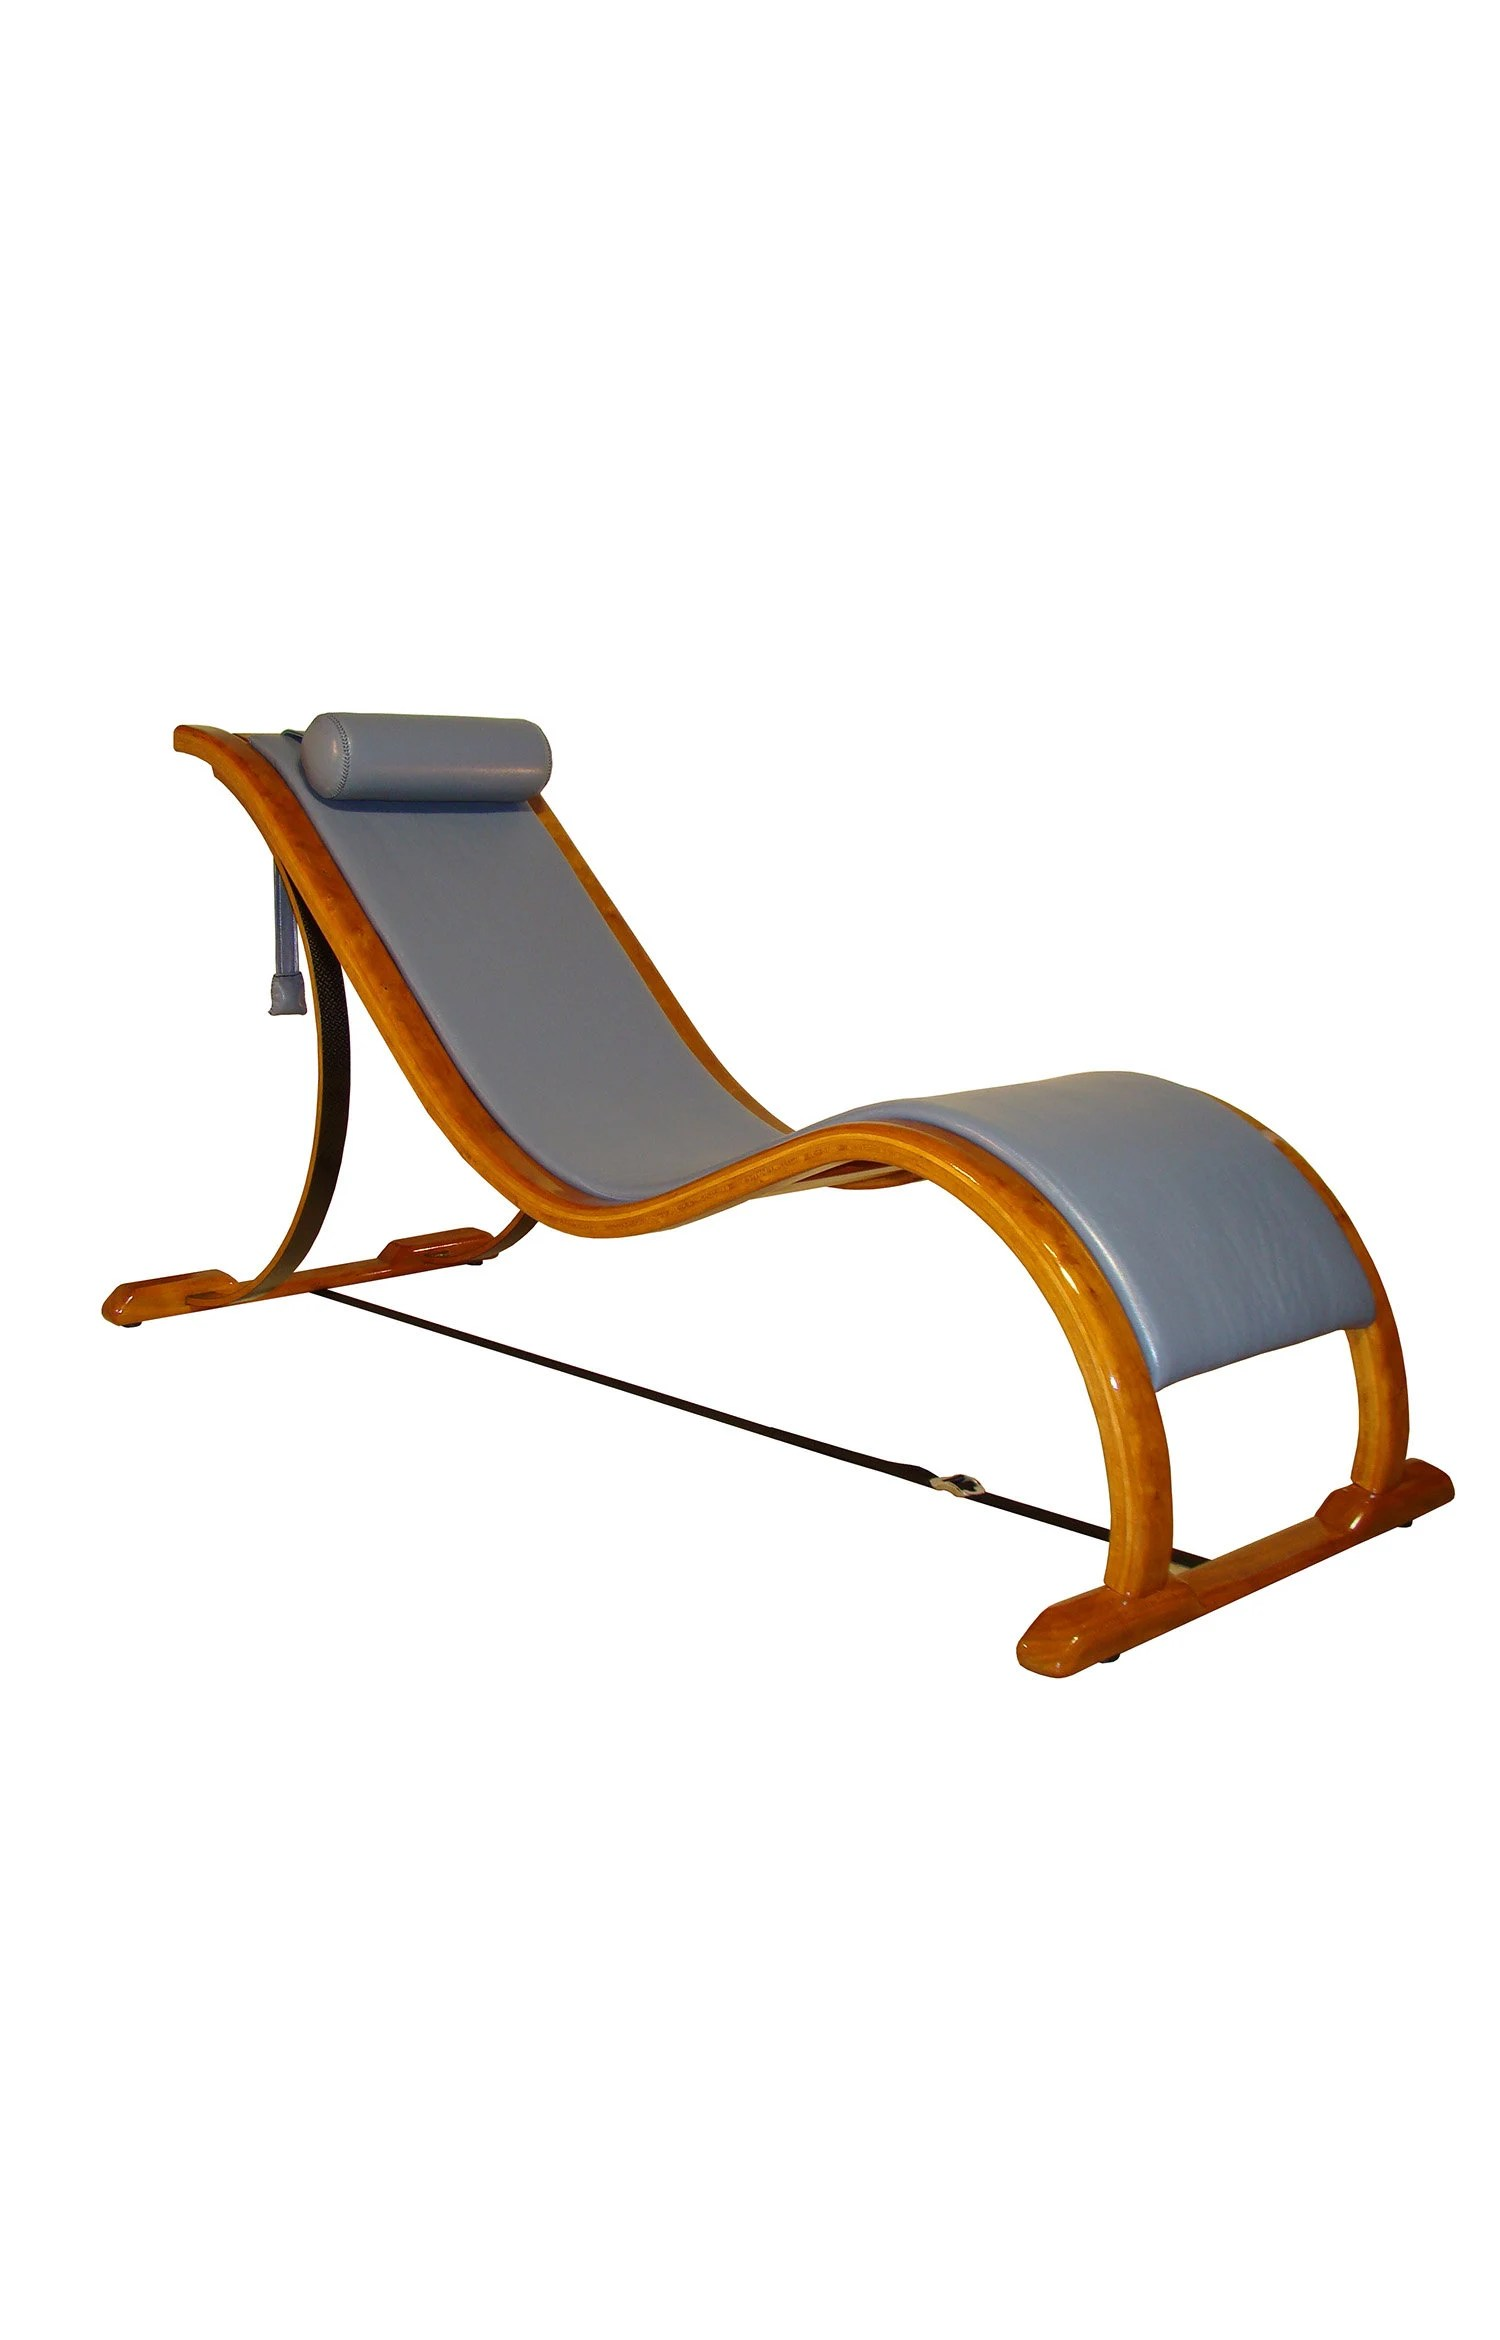 Best Sex Chair Modern Bent Wood Chaise Lounge With A Naughty Secret Heartwood Cherry